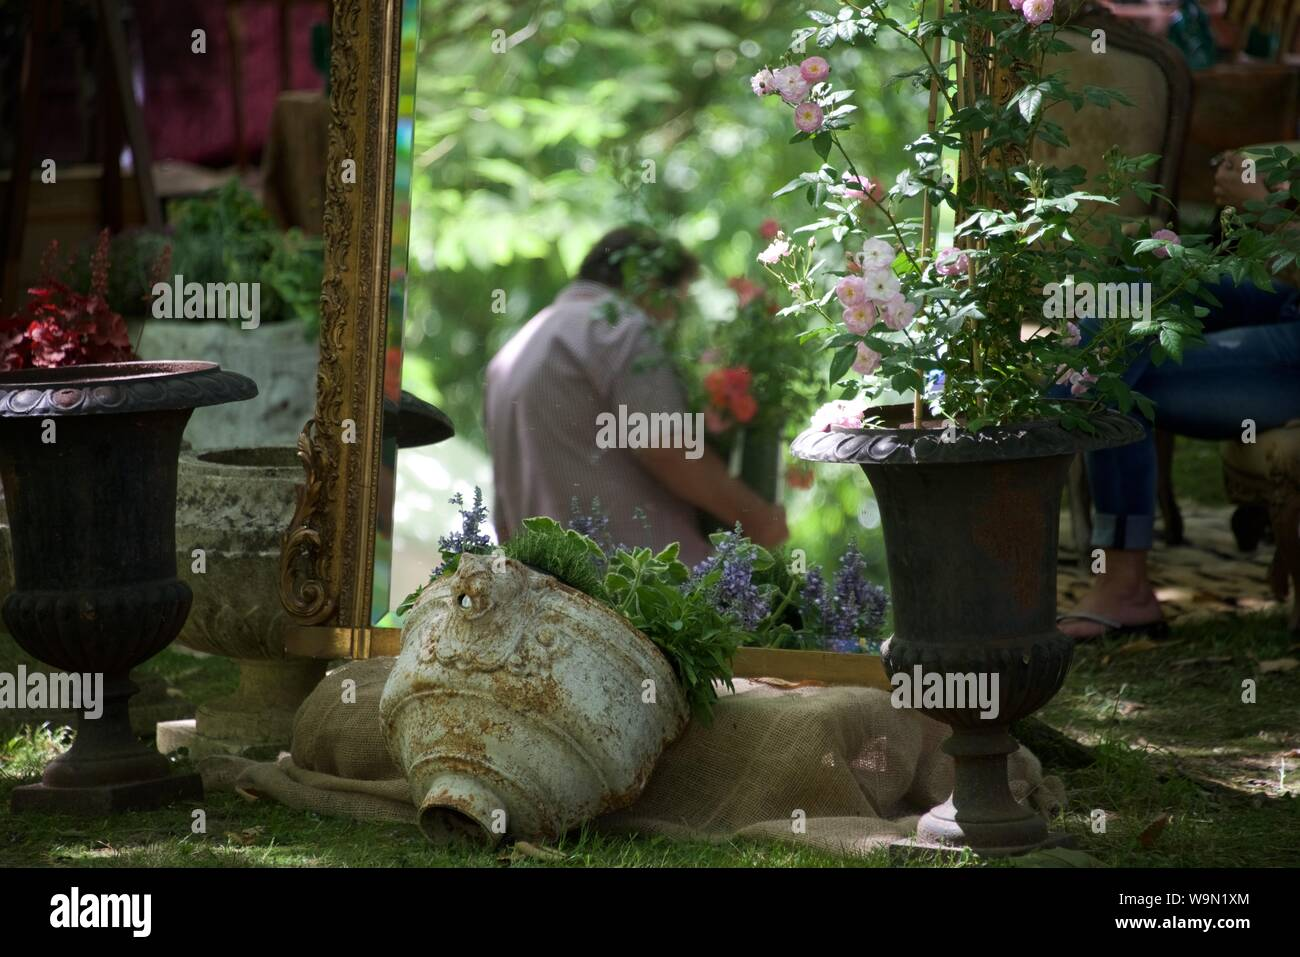 An image that sums up the annual open day held at the Château de Humeroeuille where antiques and nursery plants and flowers are sold side-by-side Stock Photo